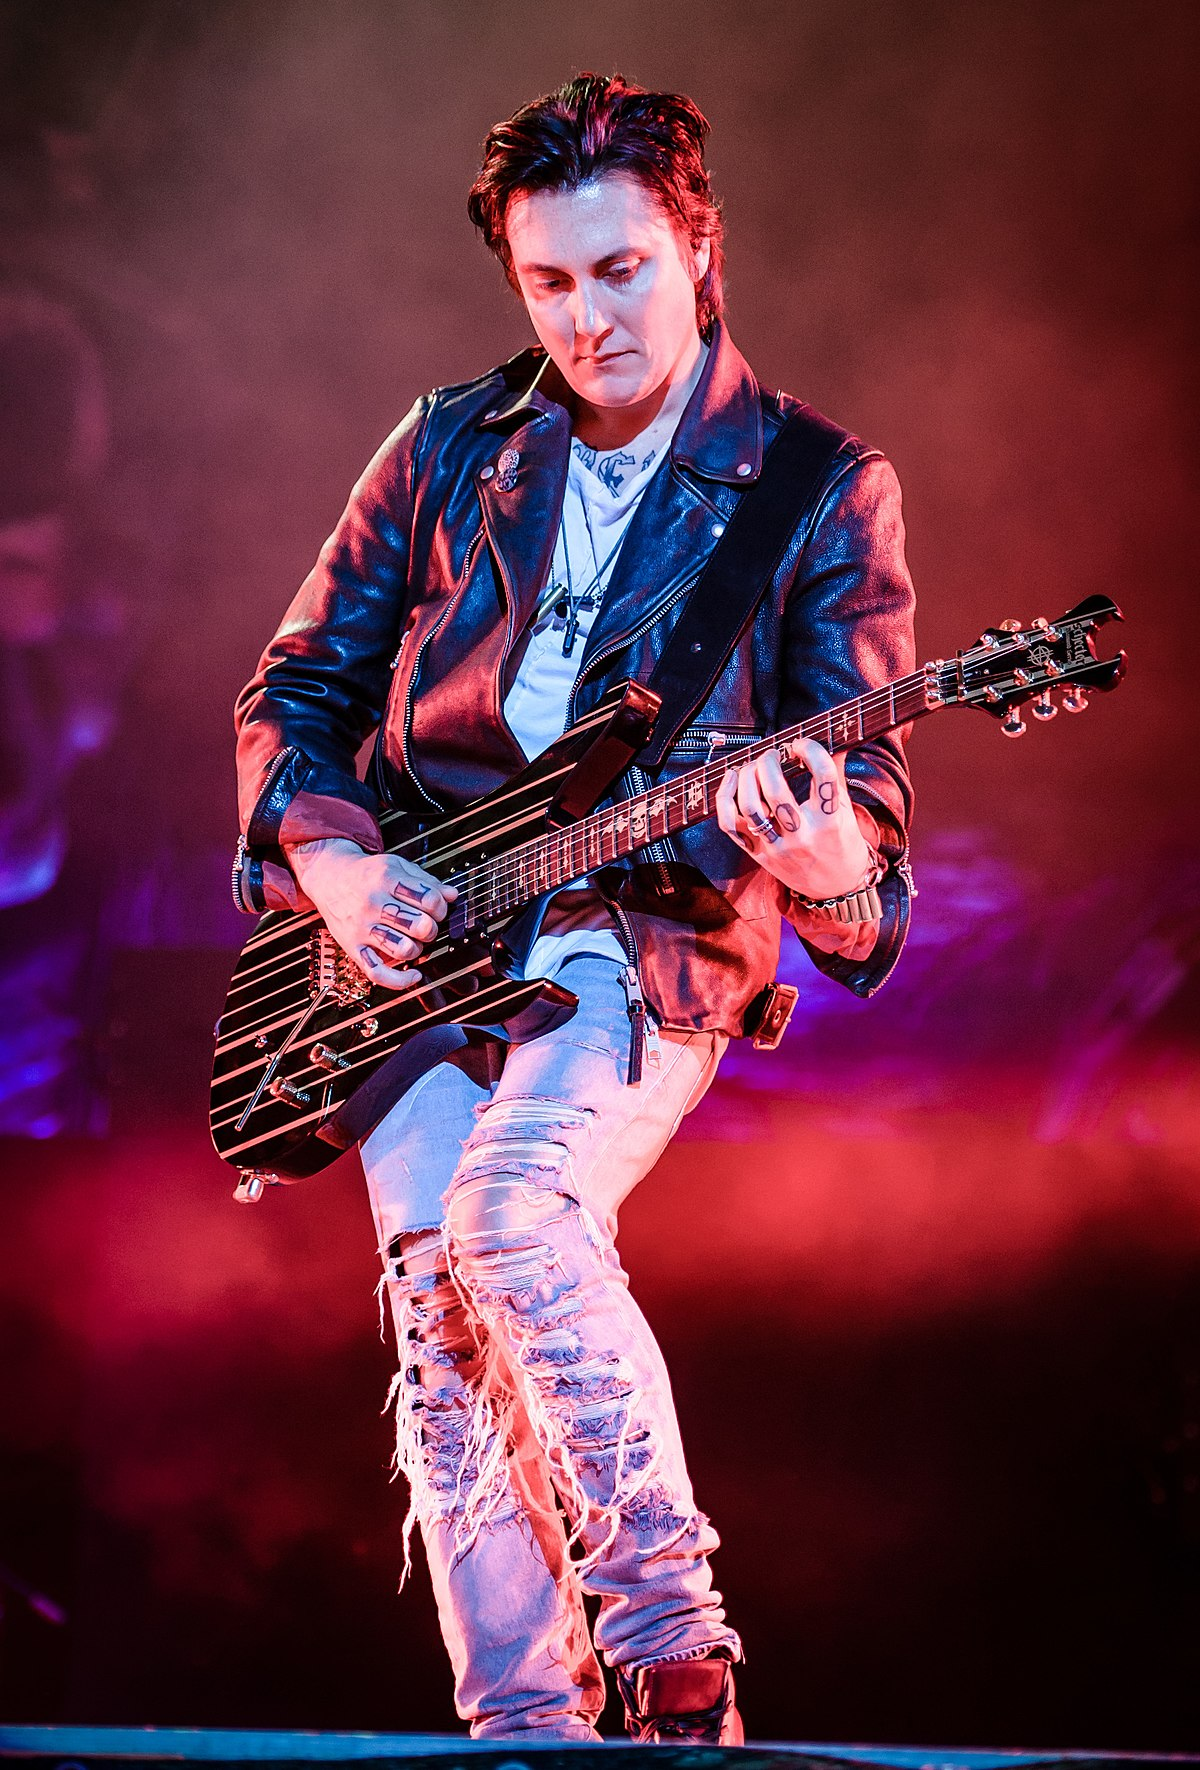 Synyster Gates - Wikip...M Shadows And Synyster Gates